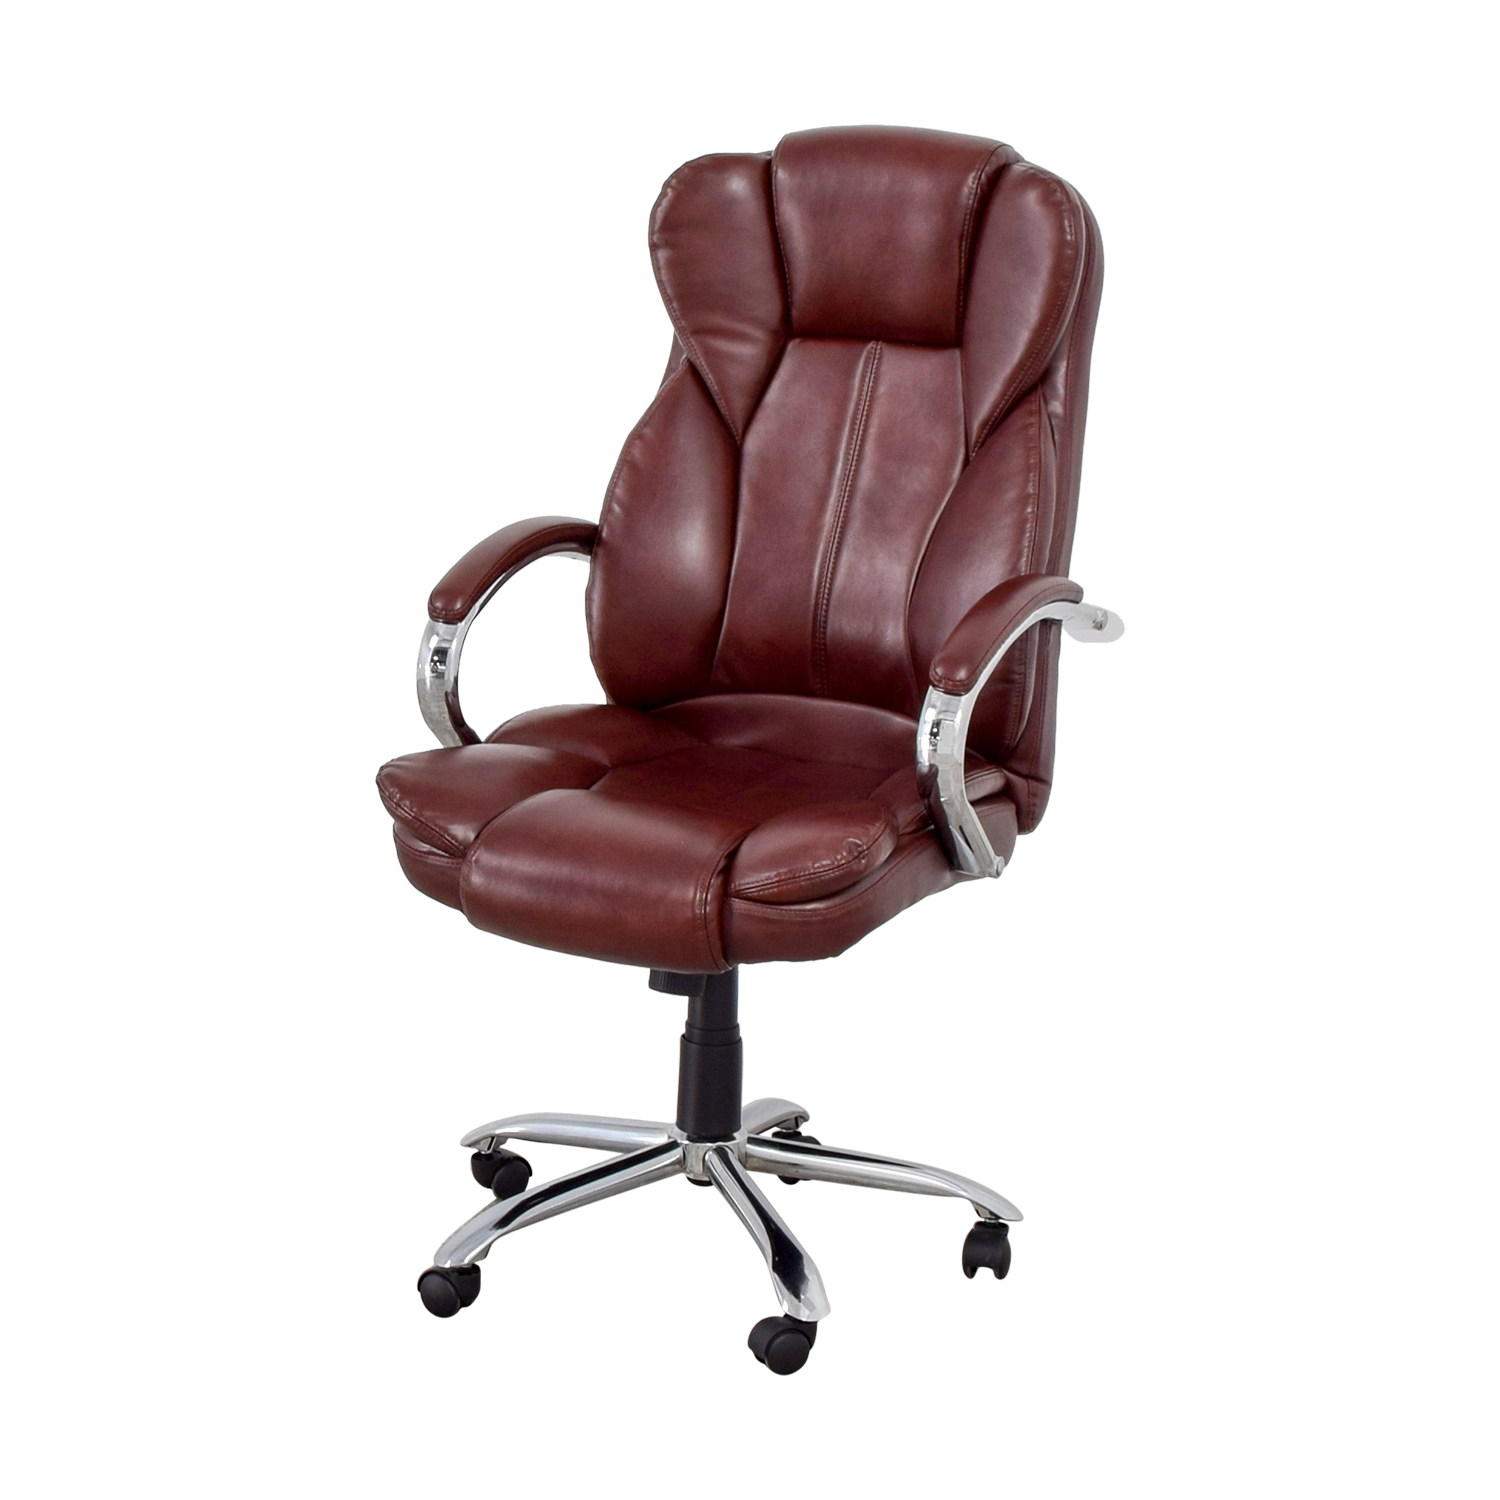 45 OFF  Best Office Best Office Burgundy Office Chair